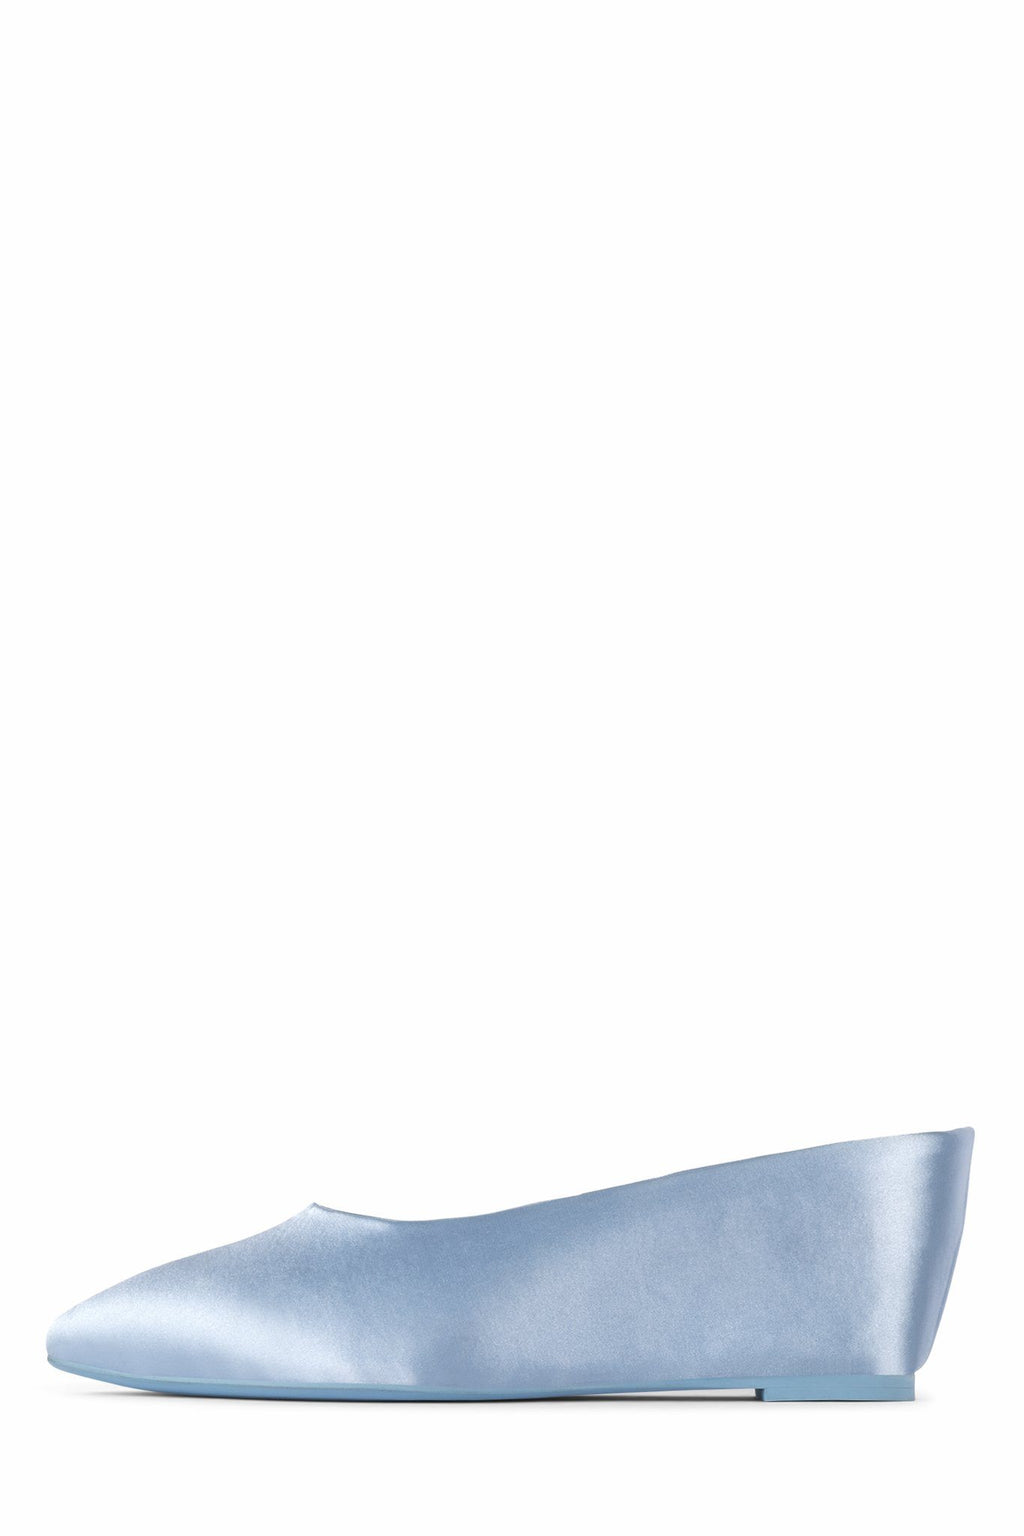 NINON Slippers STRATEGY Baby Blue Satin Blue 6